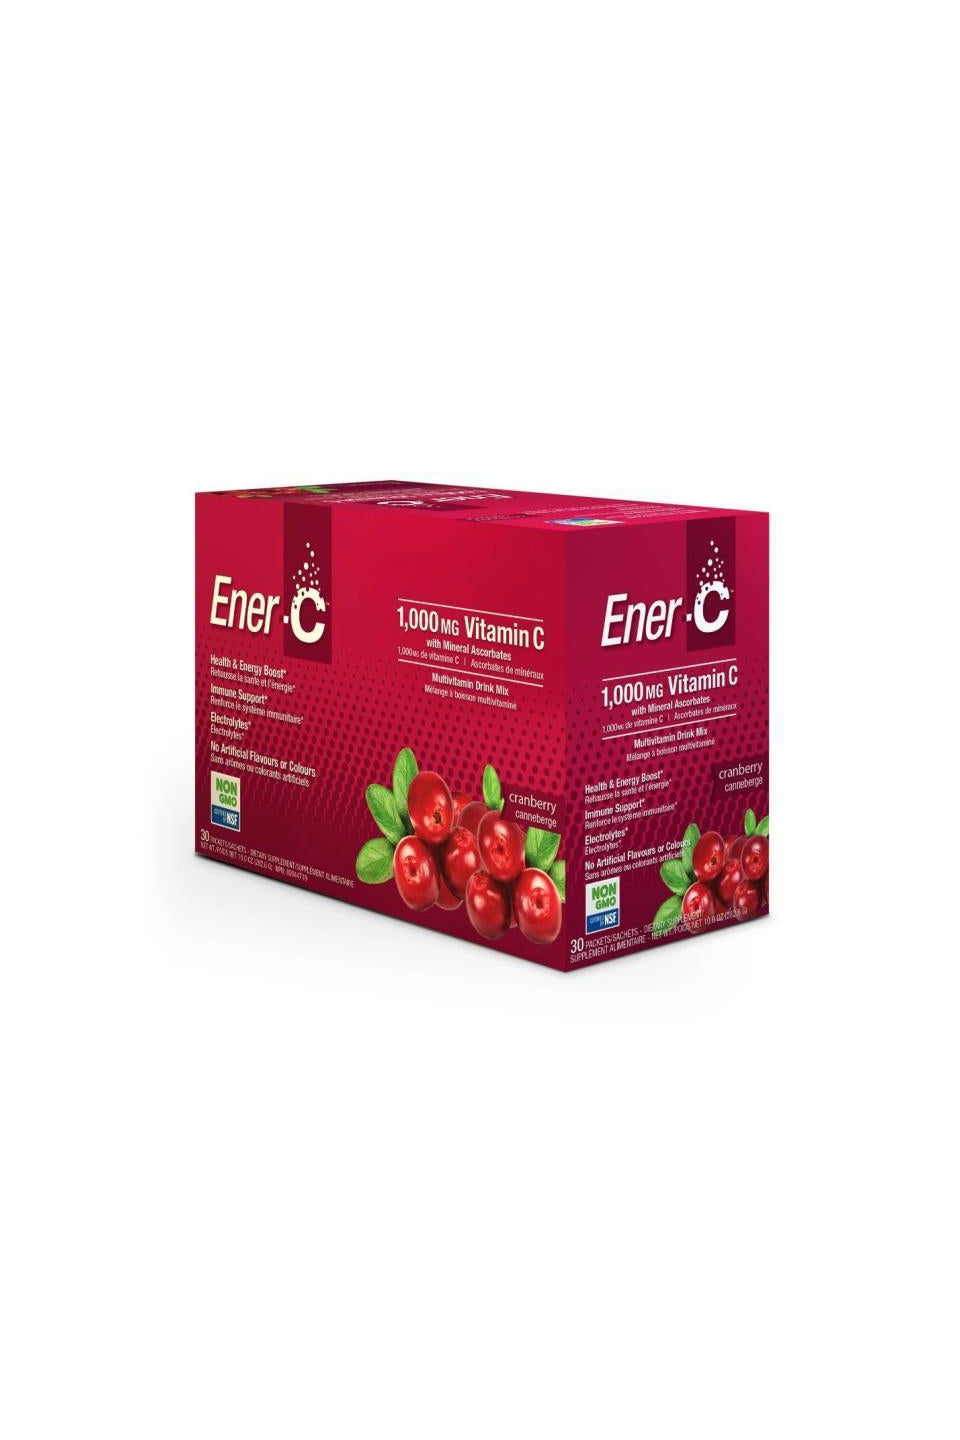 Ener-C Cranberry Multivitamin Drink Mix - 1,000mg Vitamin C (Case of 30)